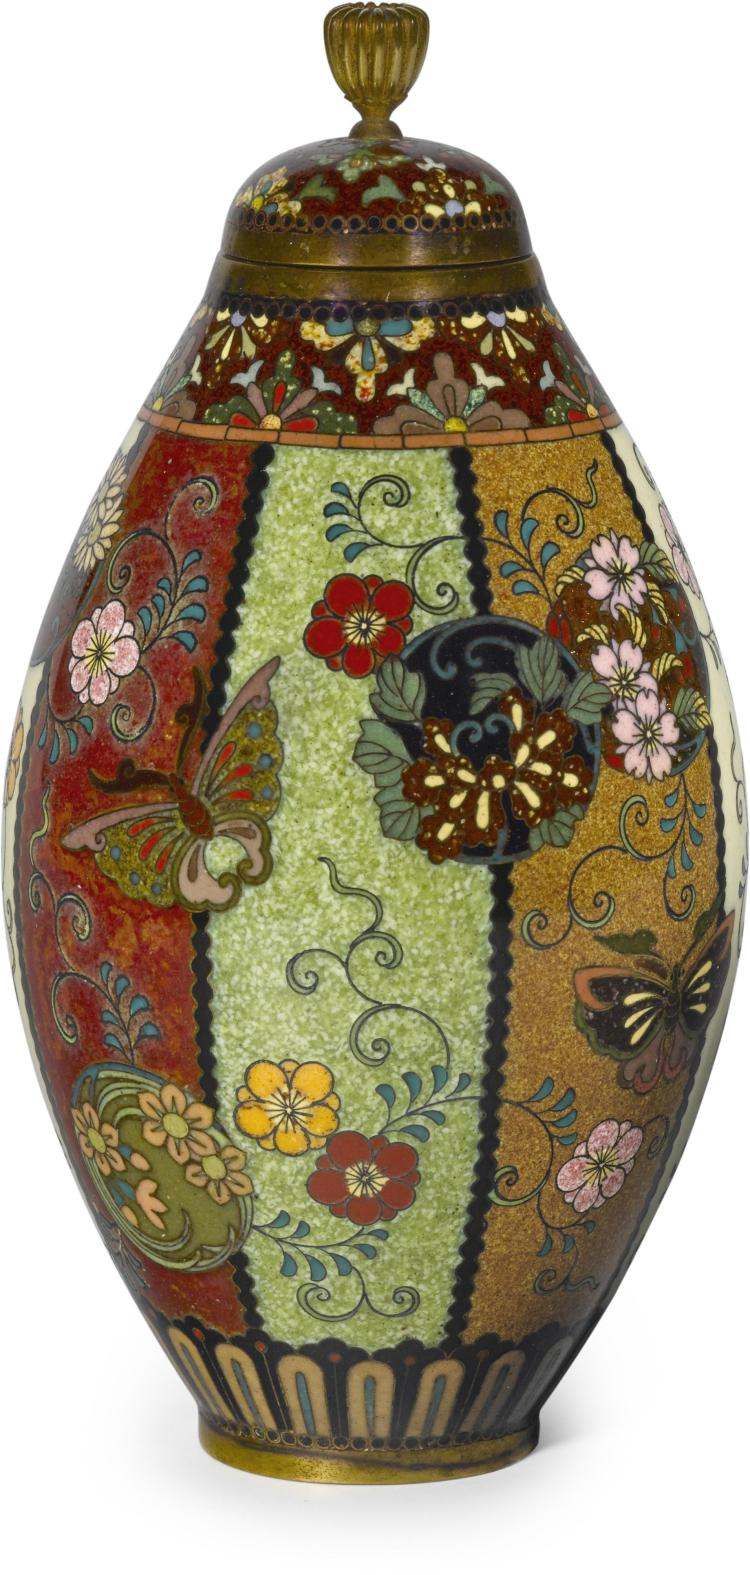 A small cloisonné enamel vase and cover